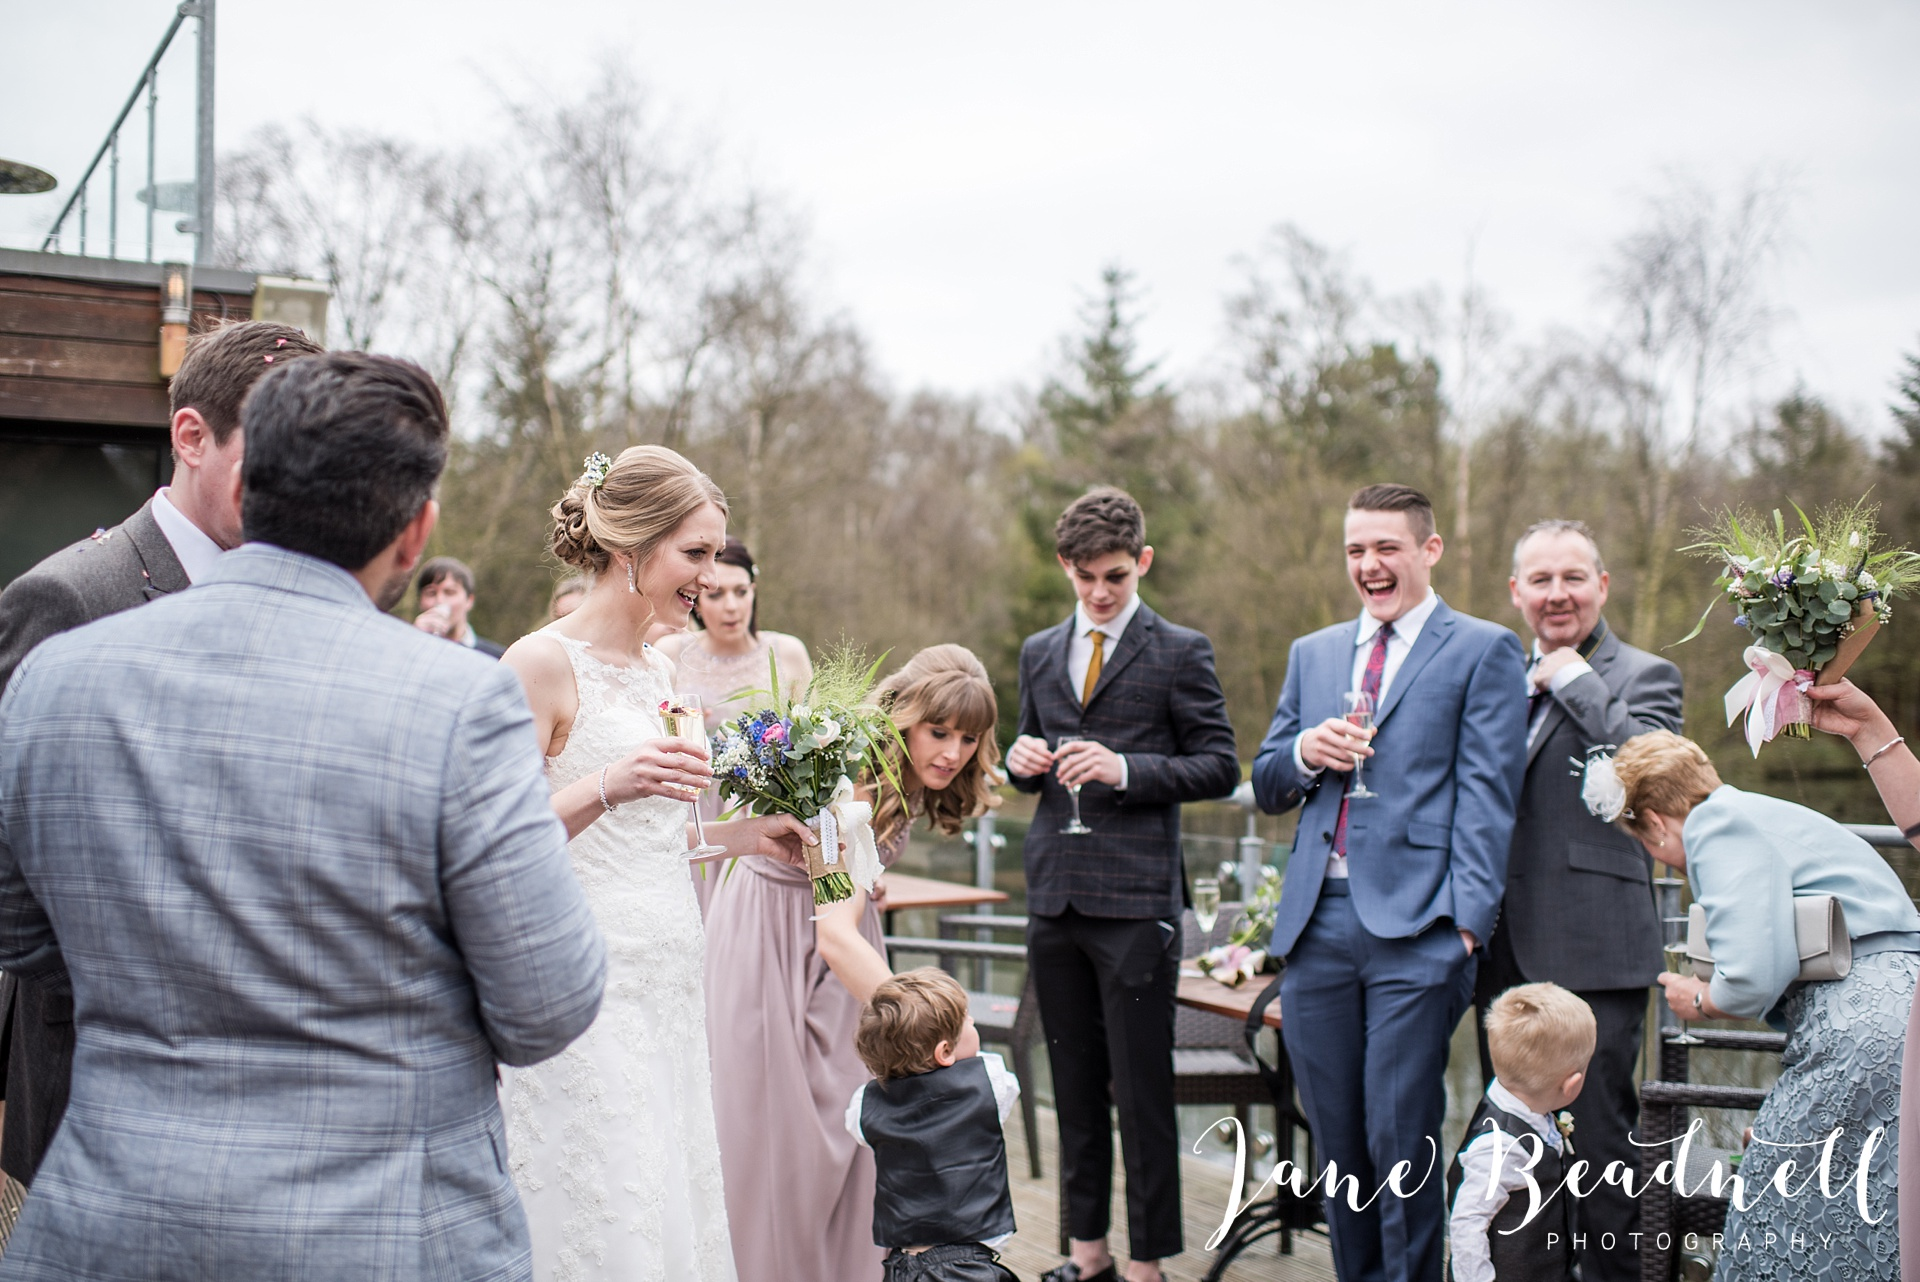 Otley Chevin Lodge wedding photography by Jane Beadnell Photography Leeds_0062